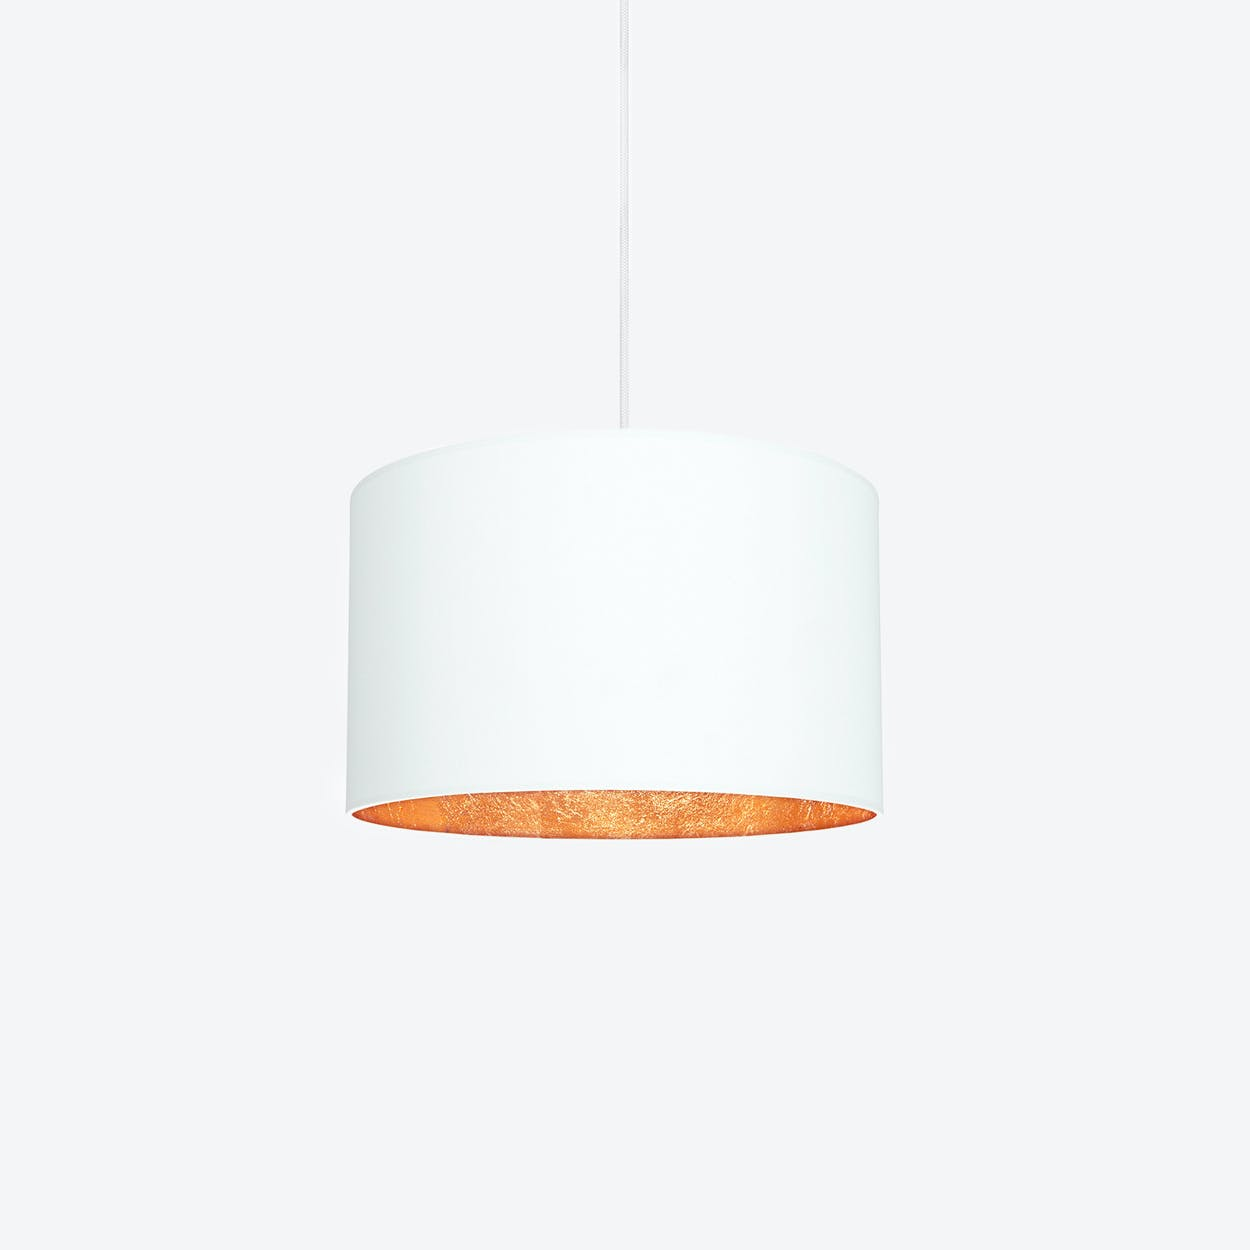 Mika lighting Antique Mika Medium Single Pendant Light In White With Copper Leaf By Sotto Luce Lamps Empire Mika Medium Single Pendant Light In White With Copper Leaf By Sotto